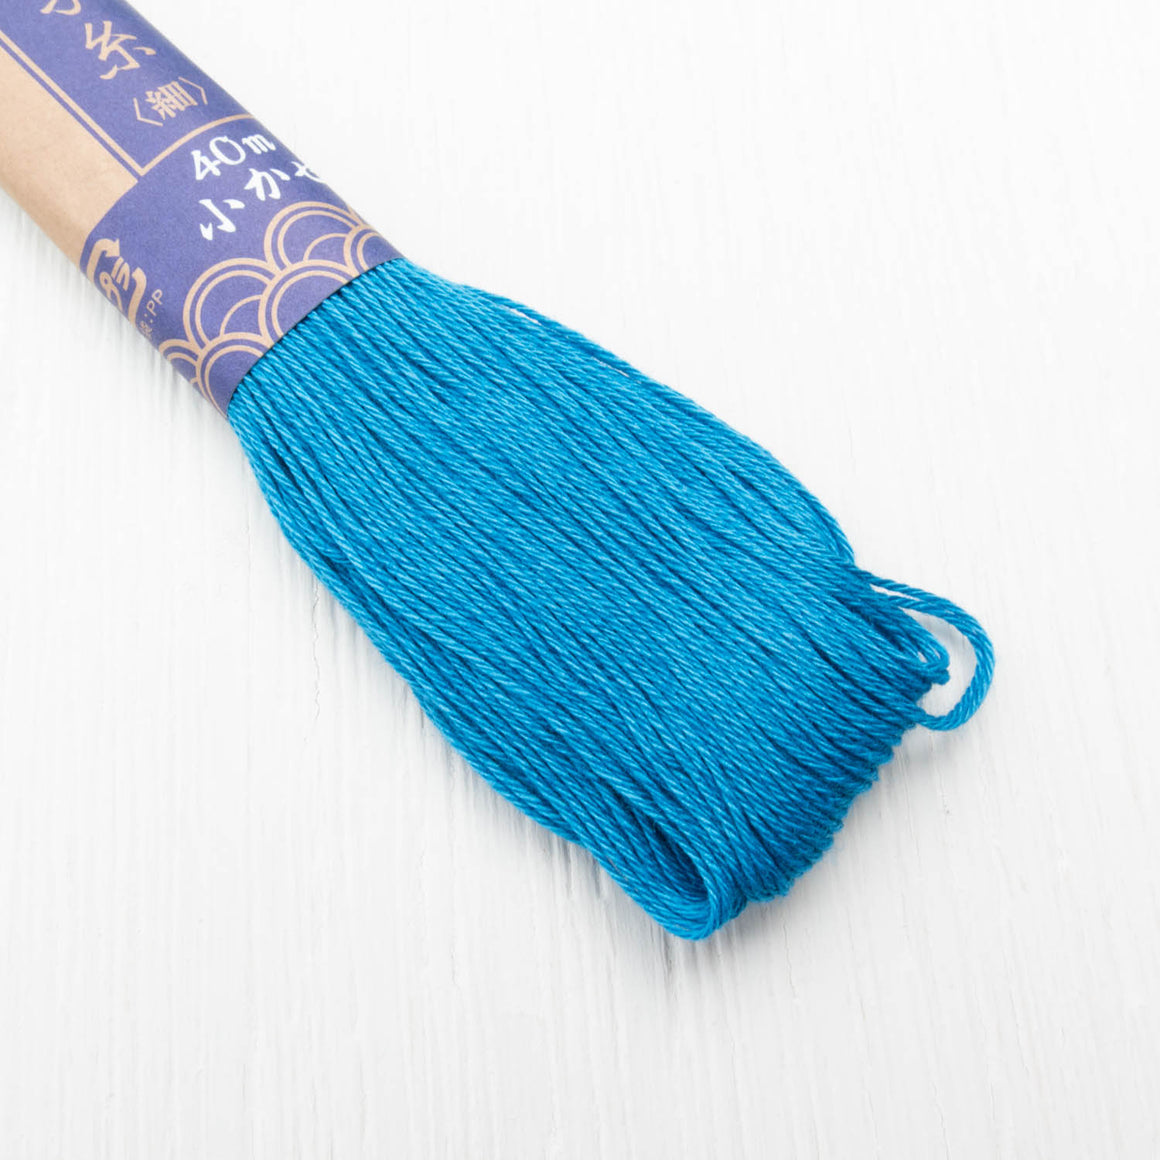 Yokota Sashiko Thread - Denim Blue (#27) Sashiko - Snuggly Monkey